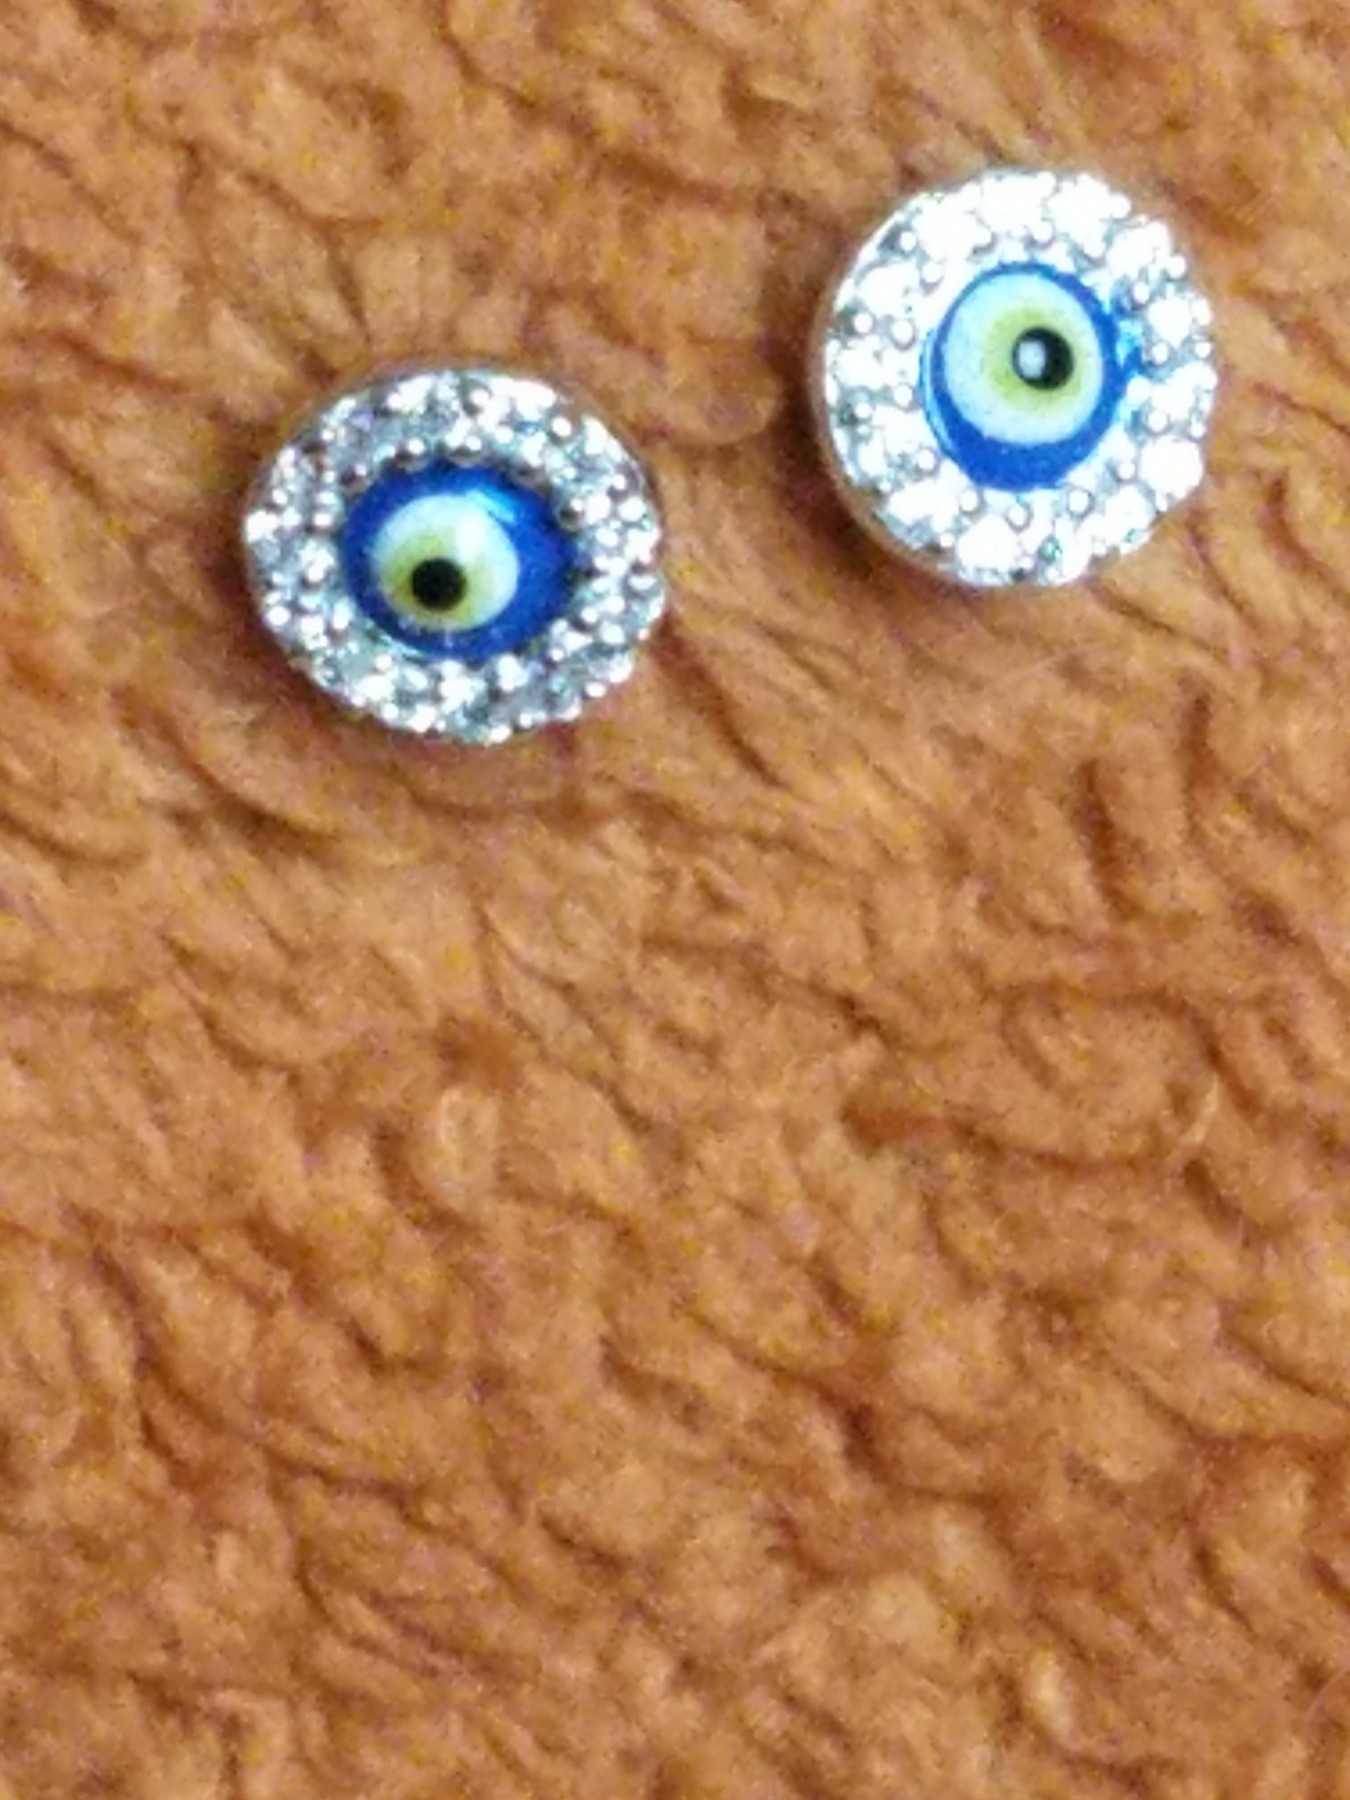 Gorgeous classic Evil Eye symbolism surrounded by cubic zirconias that sparkle and plated with Rhodium over real Sterling Silver, very pretty!